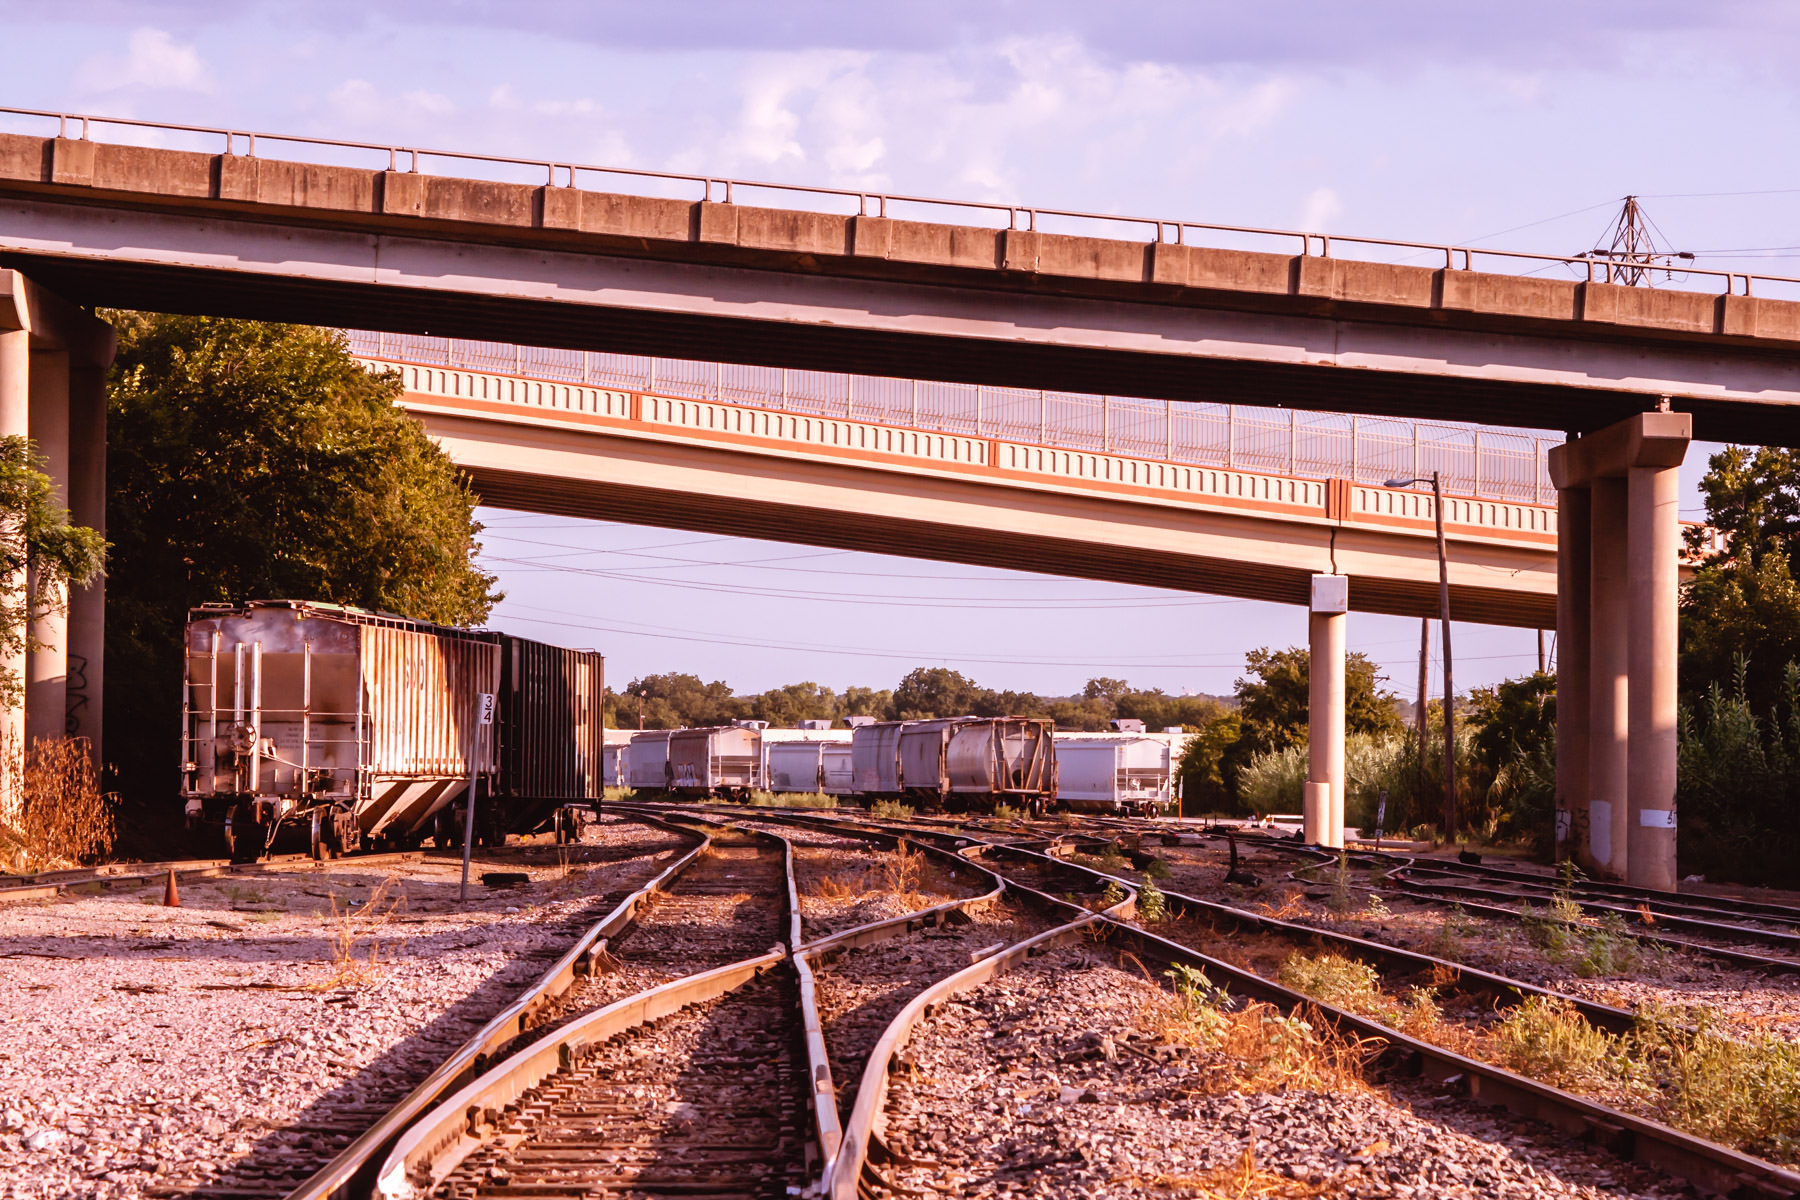 Rail cars sit idle underneath the Weatherford Street and Belknap Street bridges in Fort Worth, Texas.